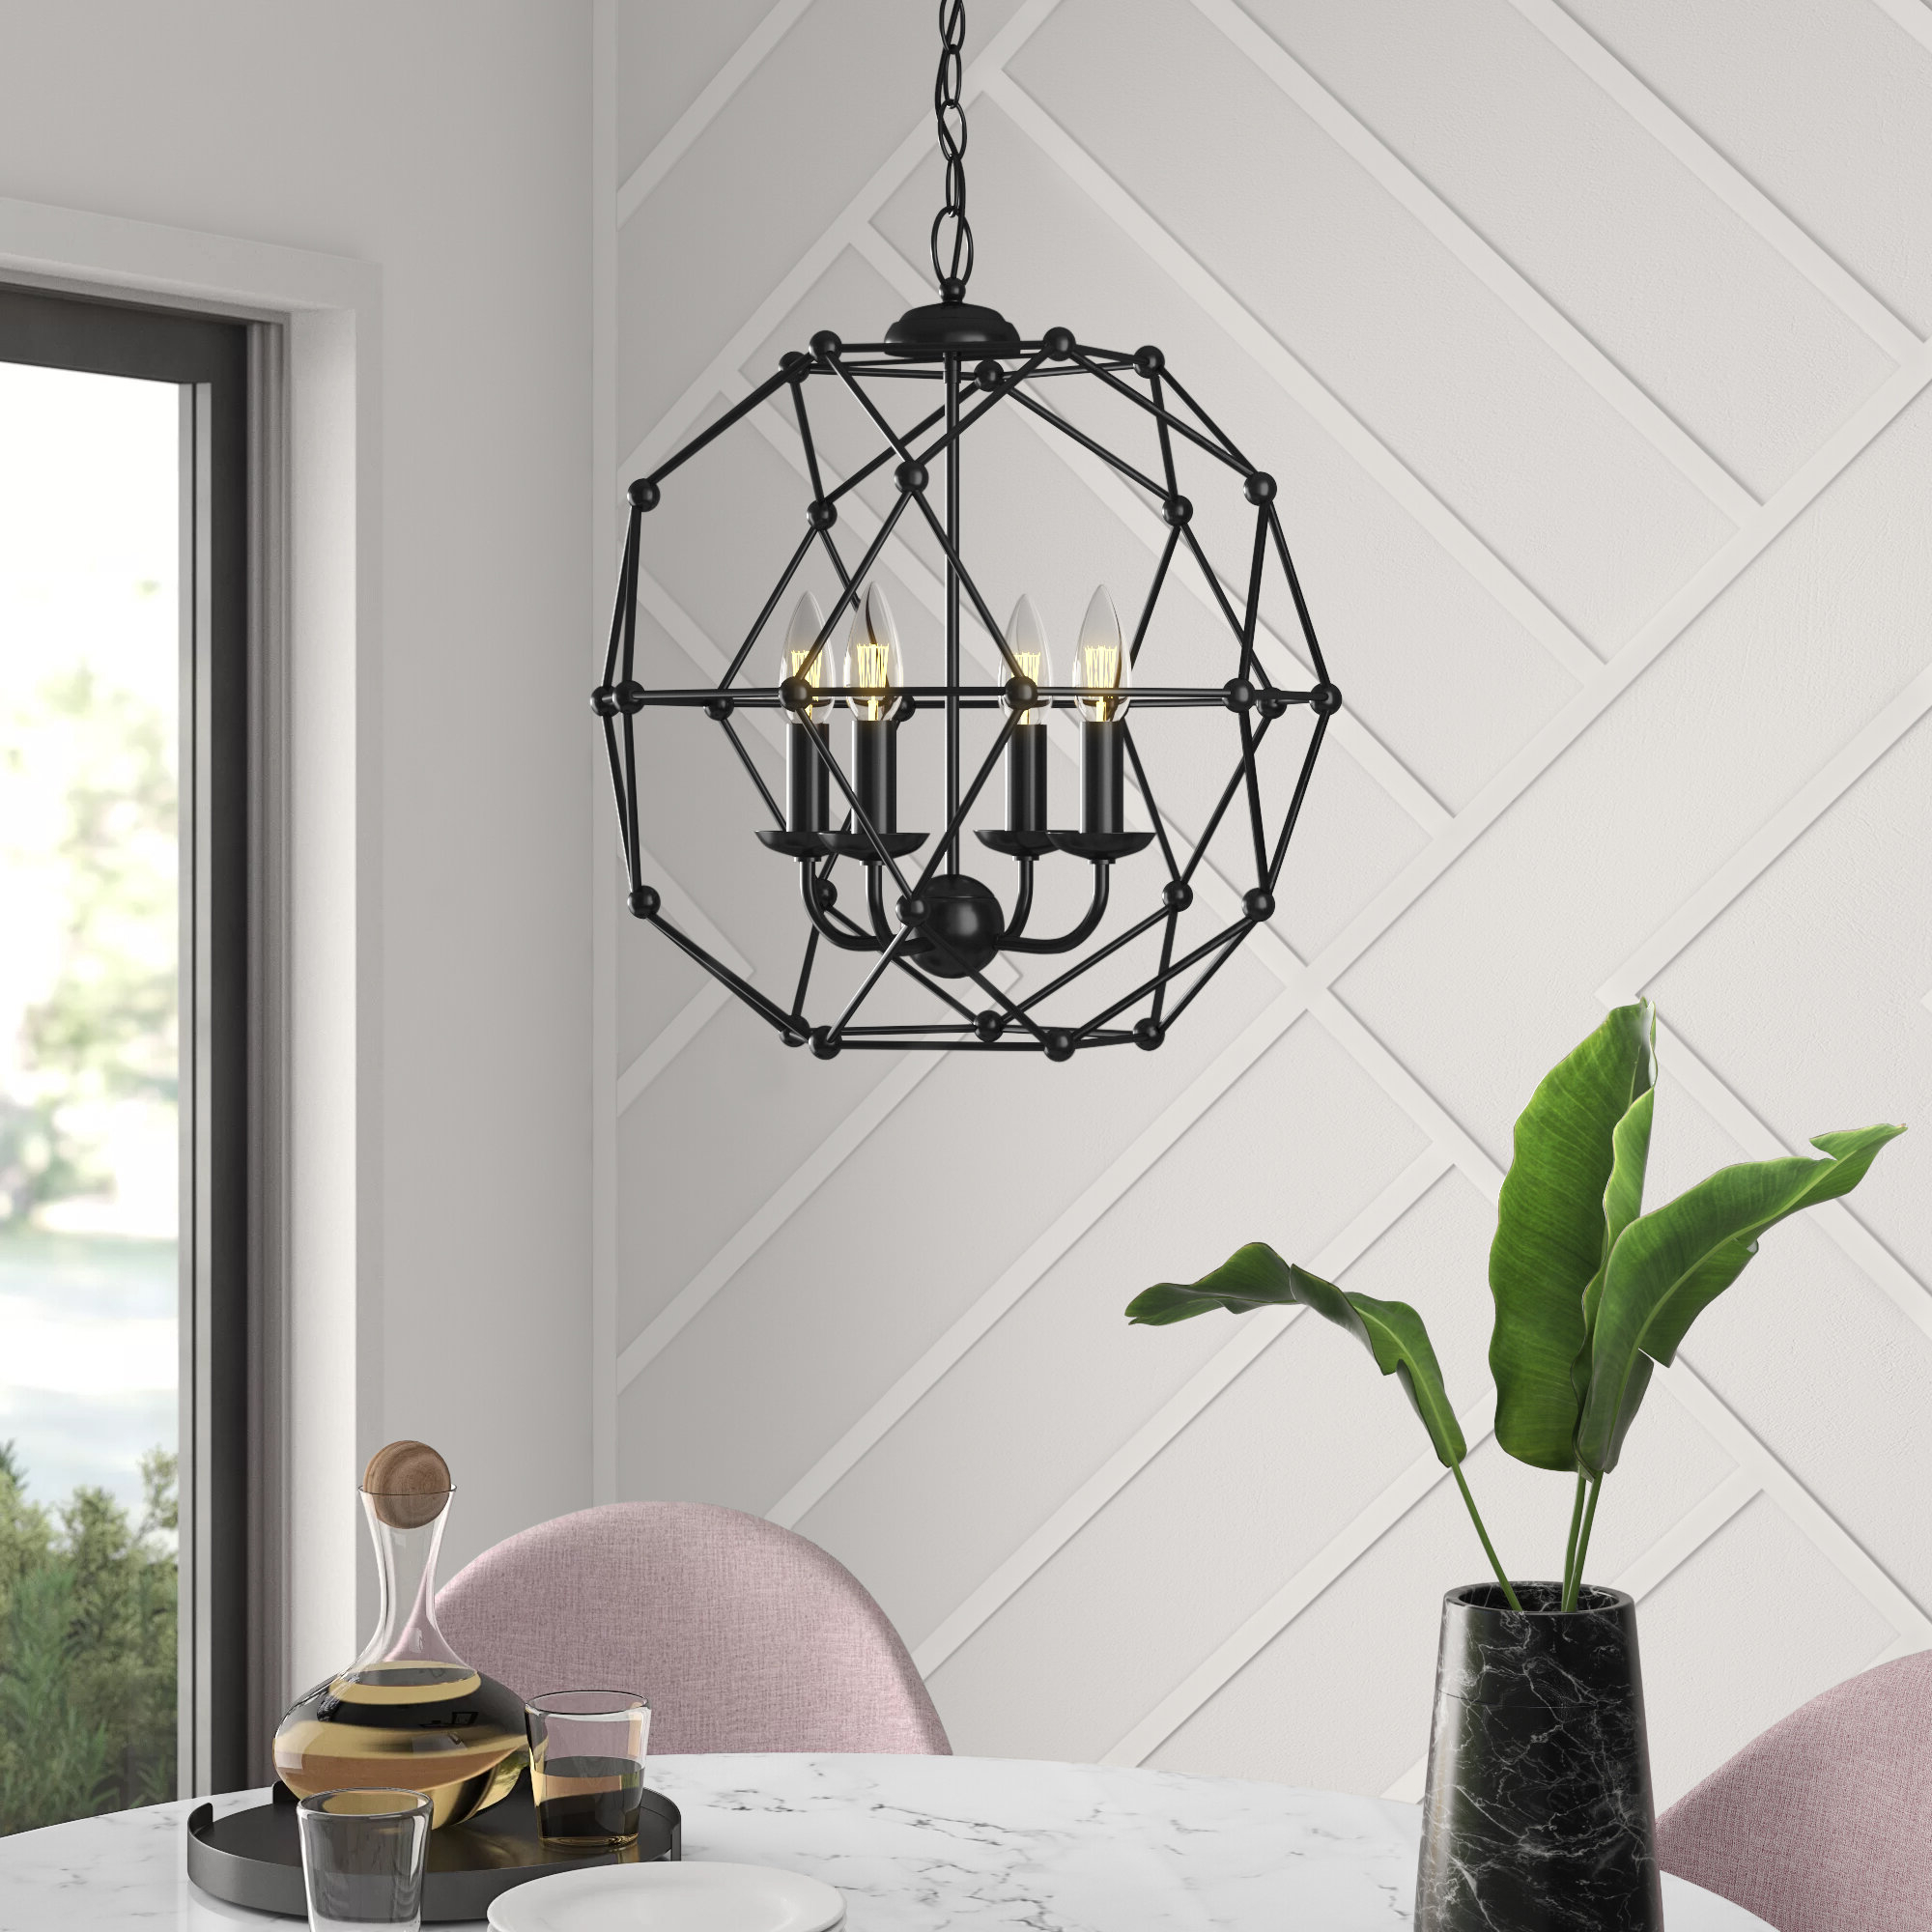 2020 Cavanagh 4 Light Geometric Chandelier With Regard To Kaycee 4 Light Geometric Chandeliers (View 6 of 25)